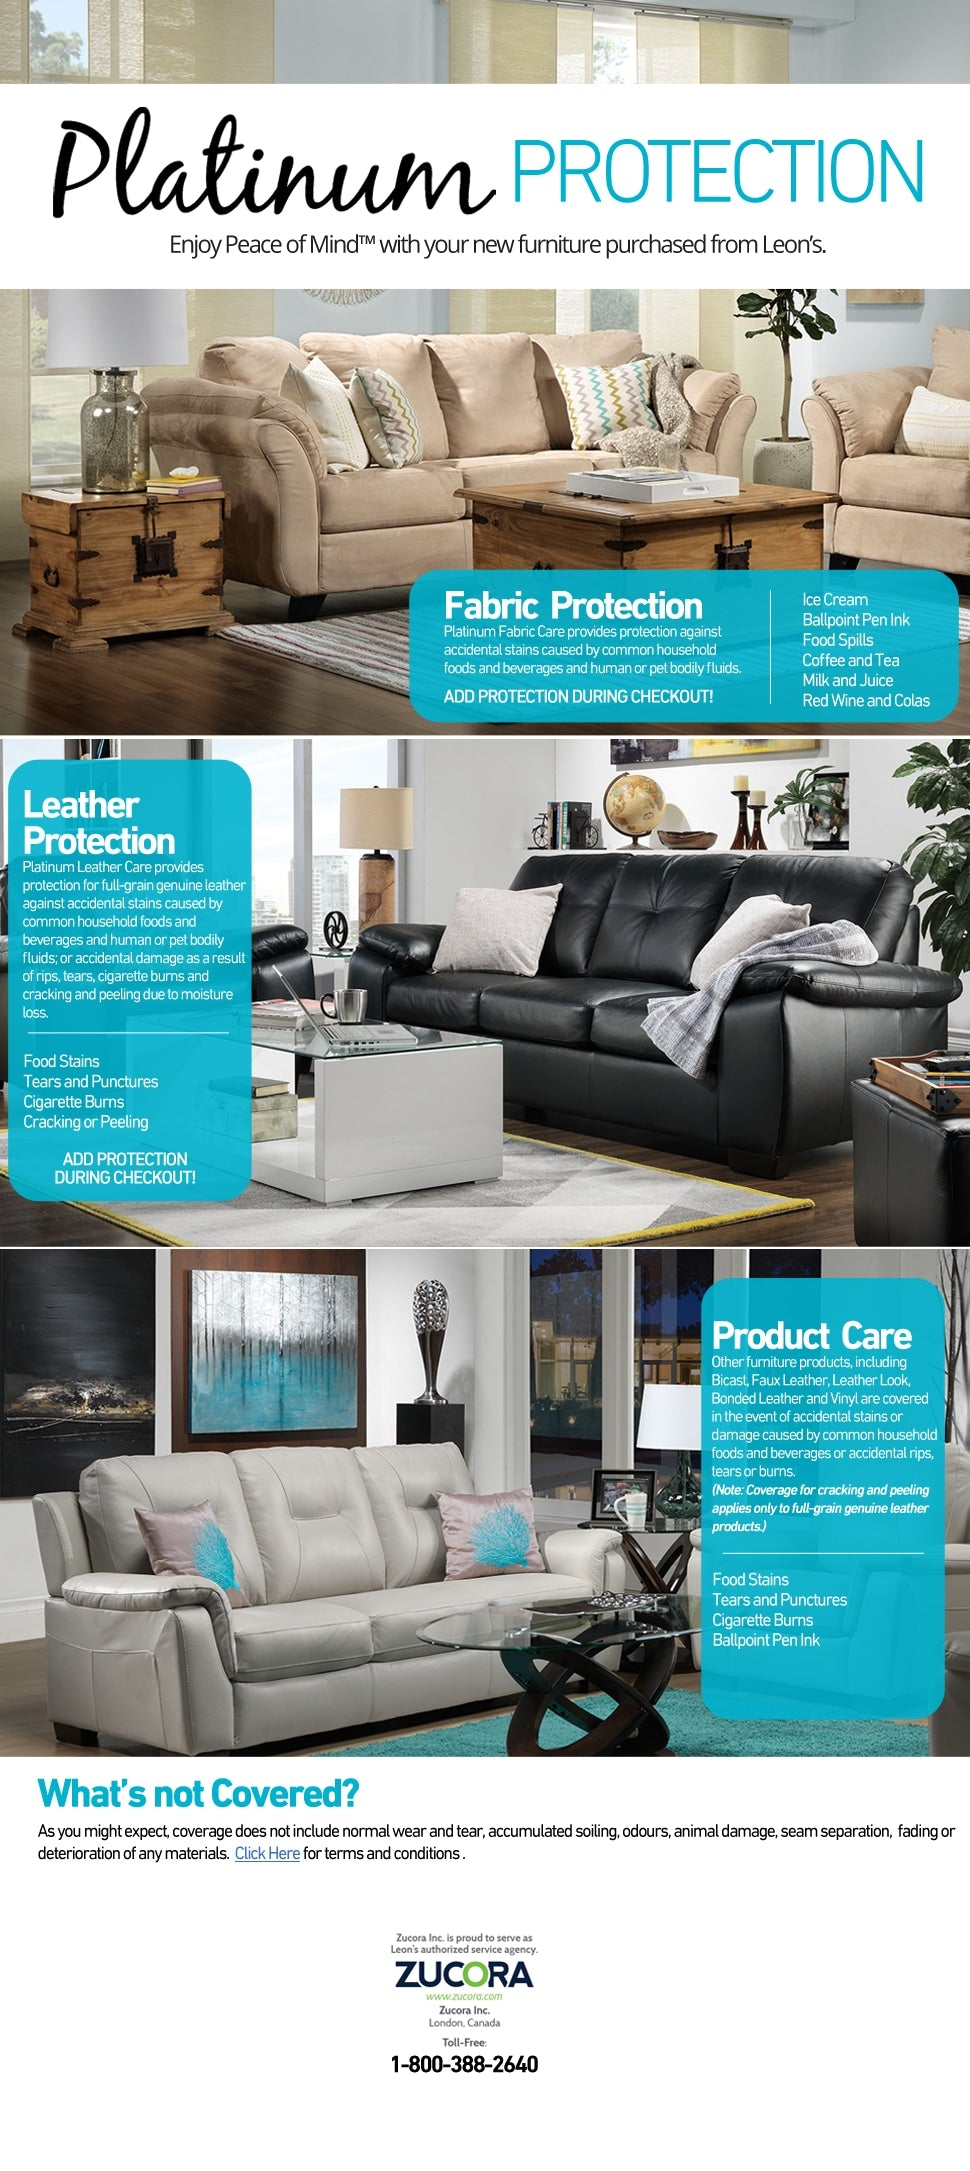 Platinum Protection - Enjoy Peace of MindTM with your furniture purchased from Leon's. Add in cart.